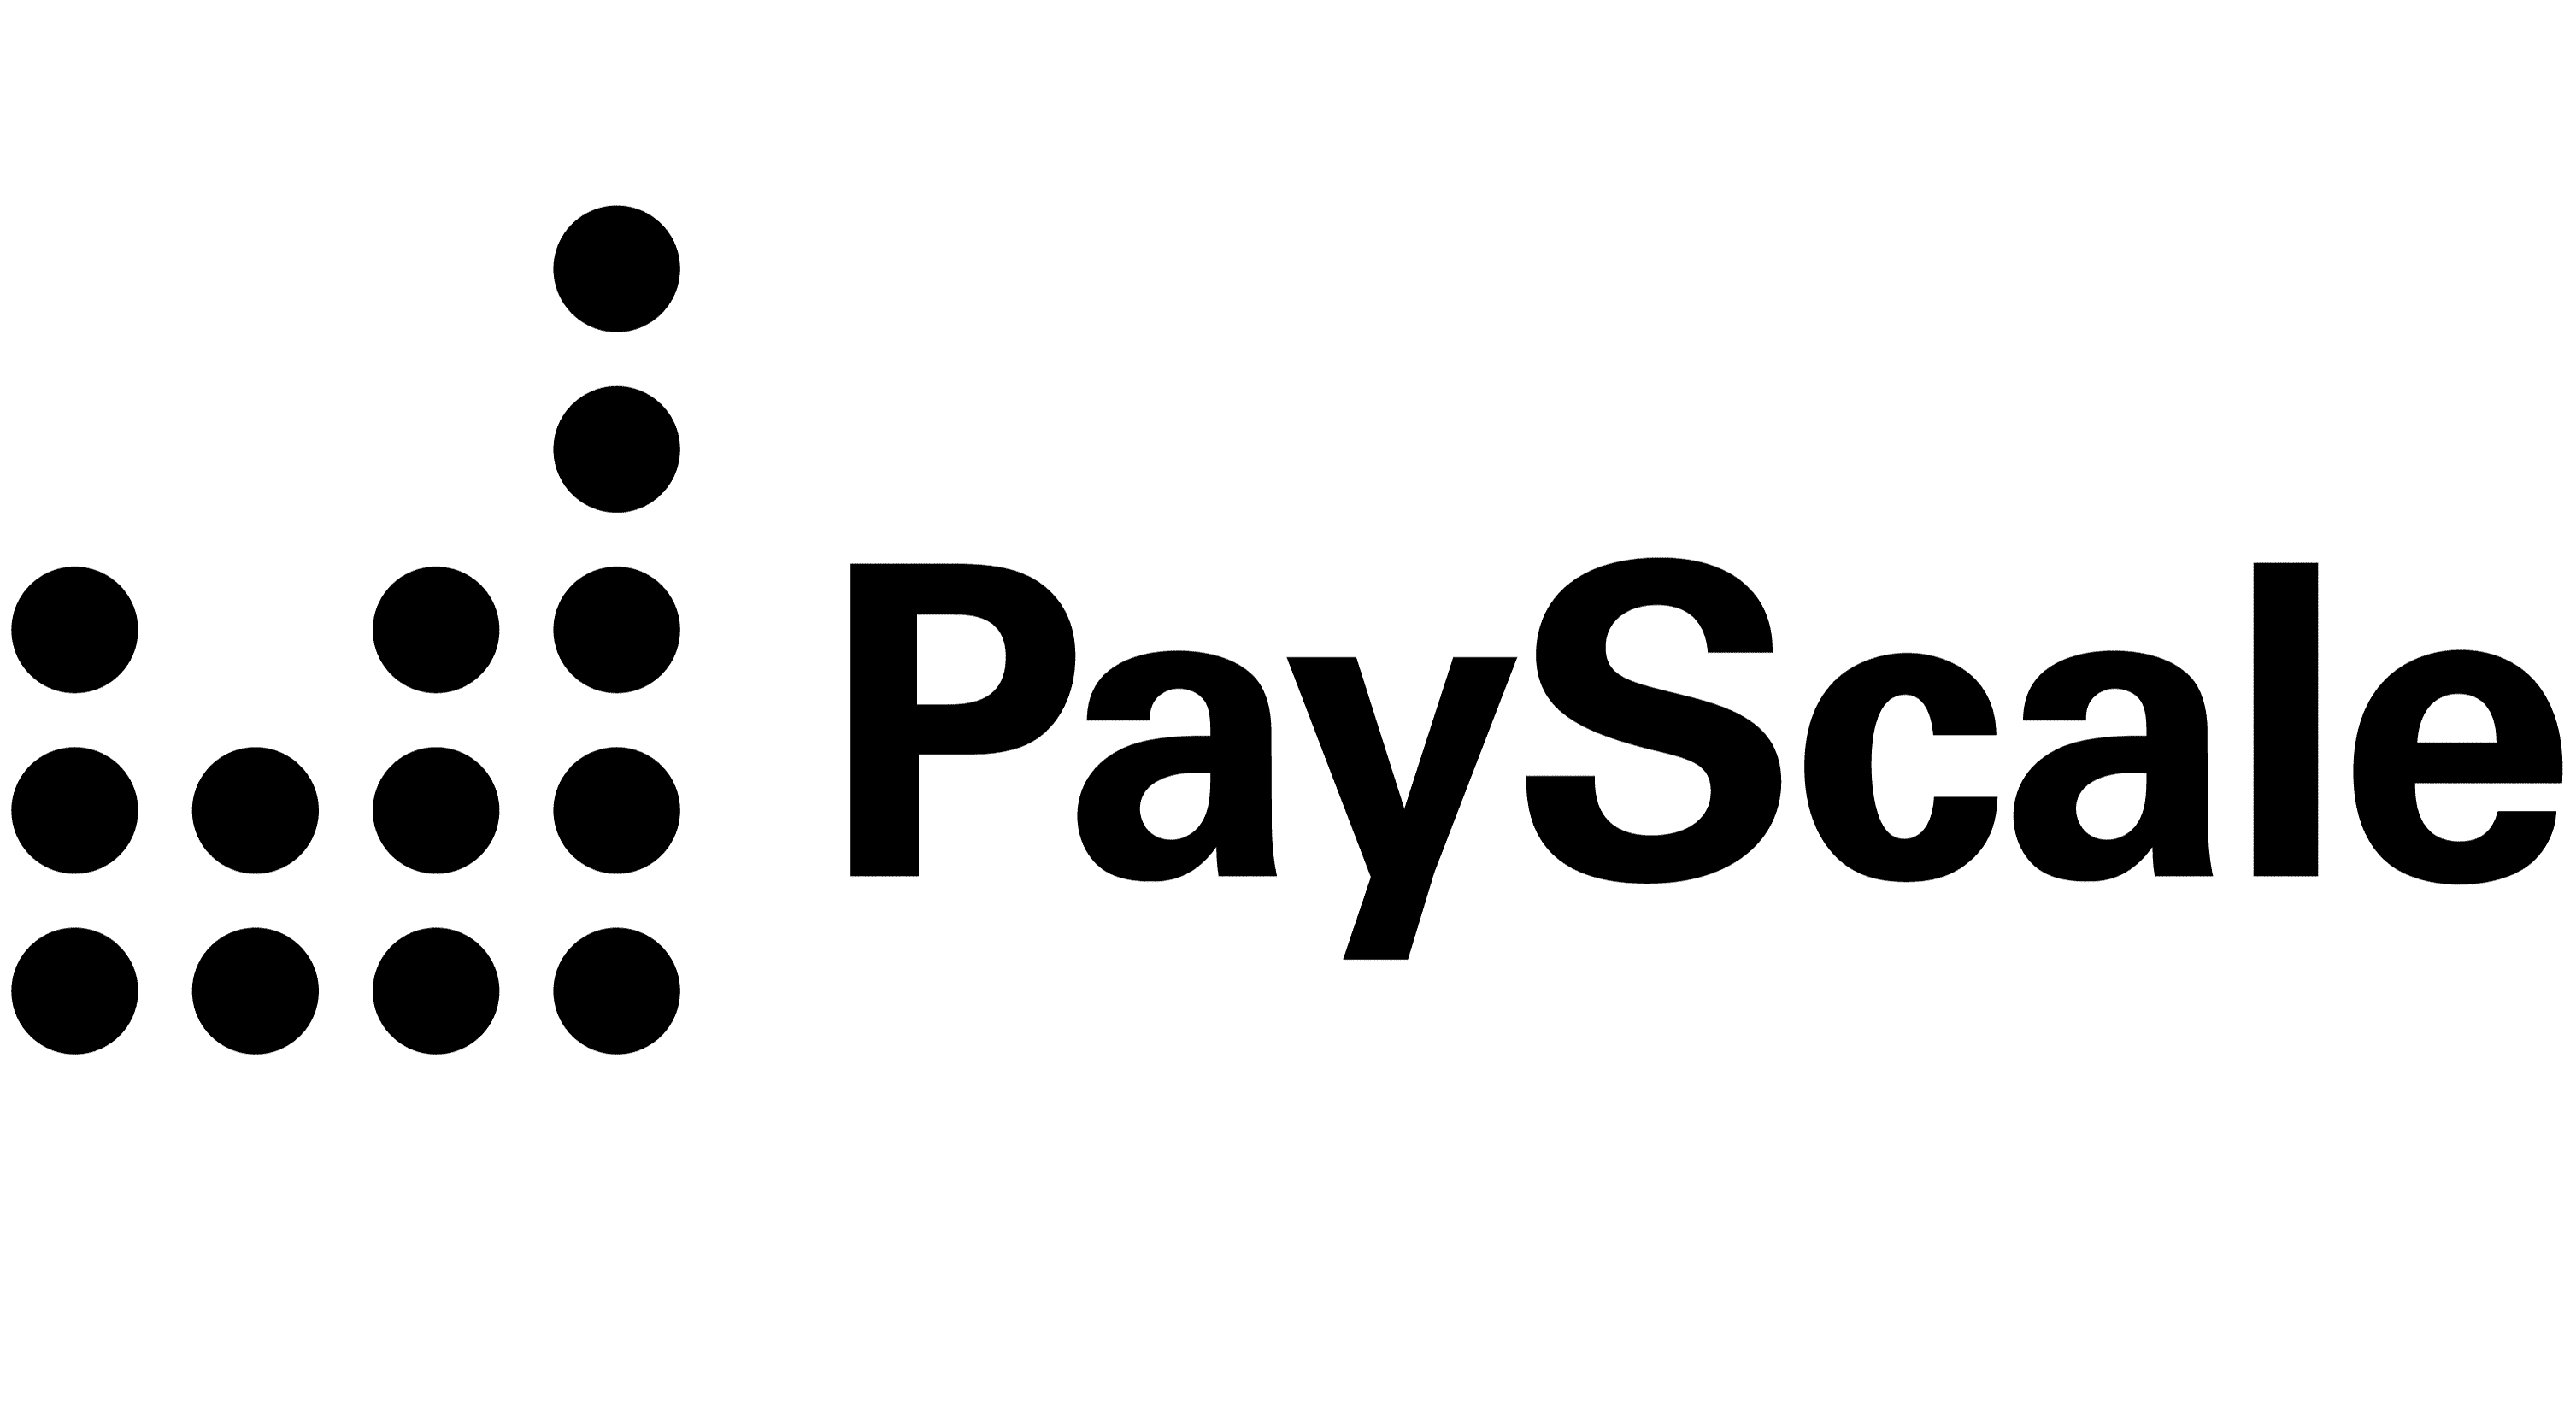 A series of columns makes the PayScale logo